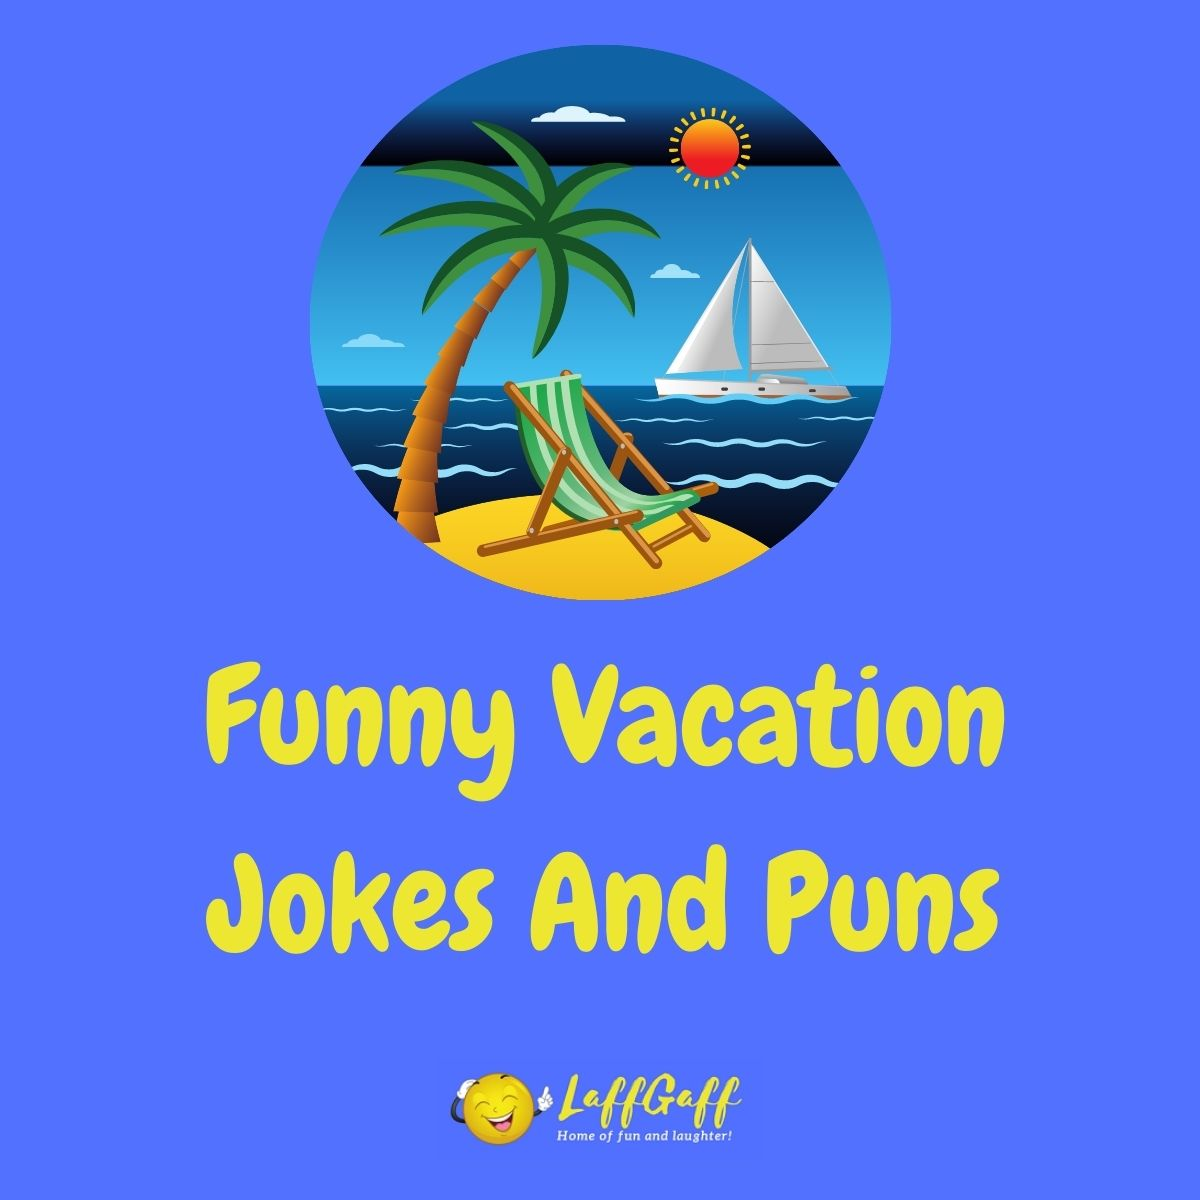 Featured image for a page of funny vacation jokes and puns.